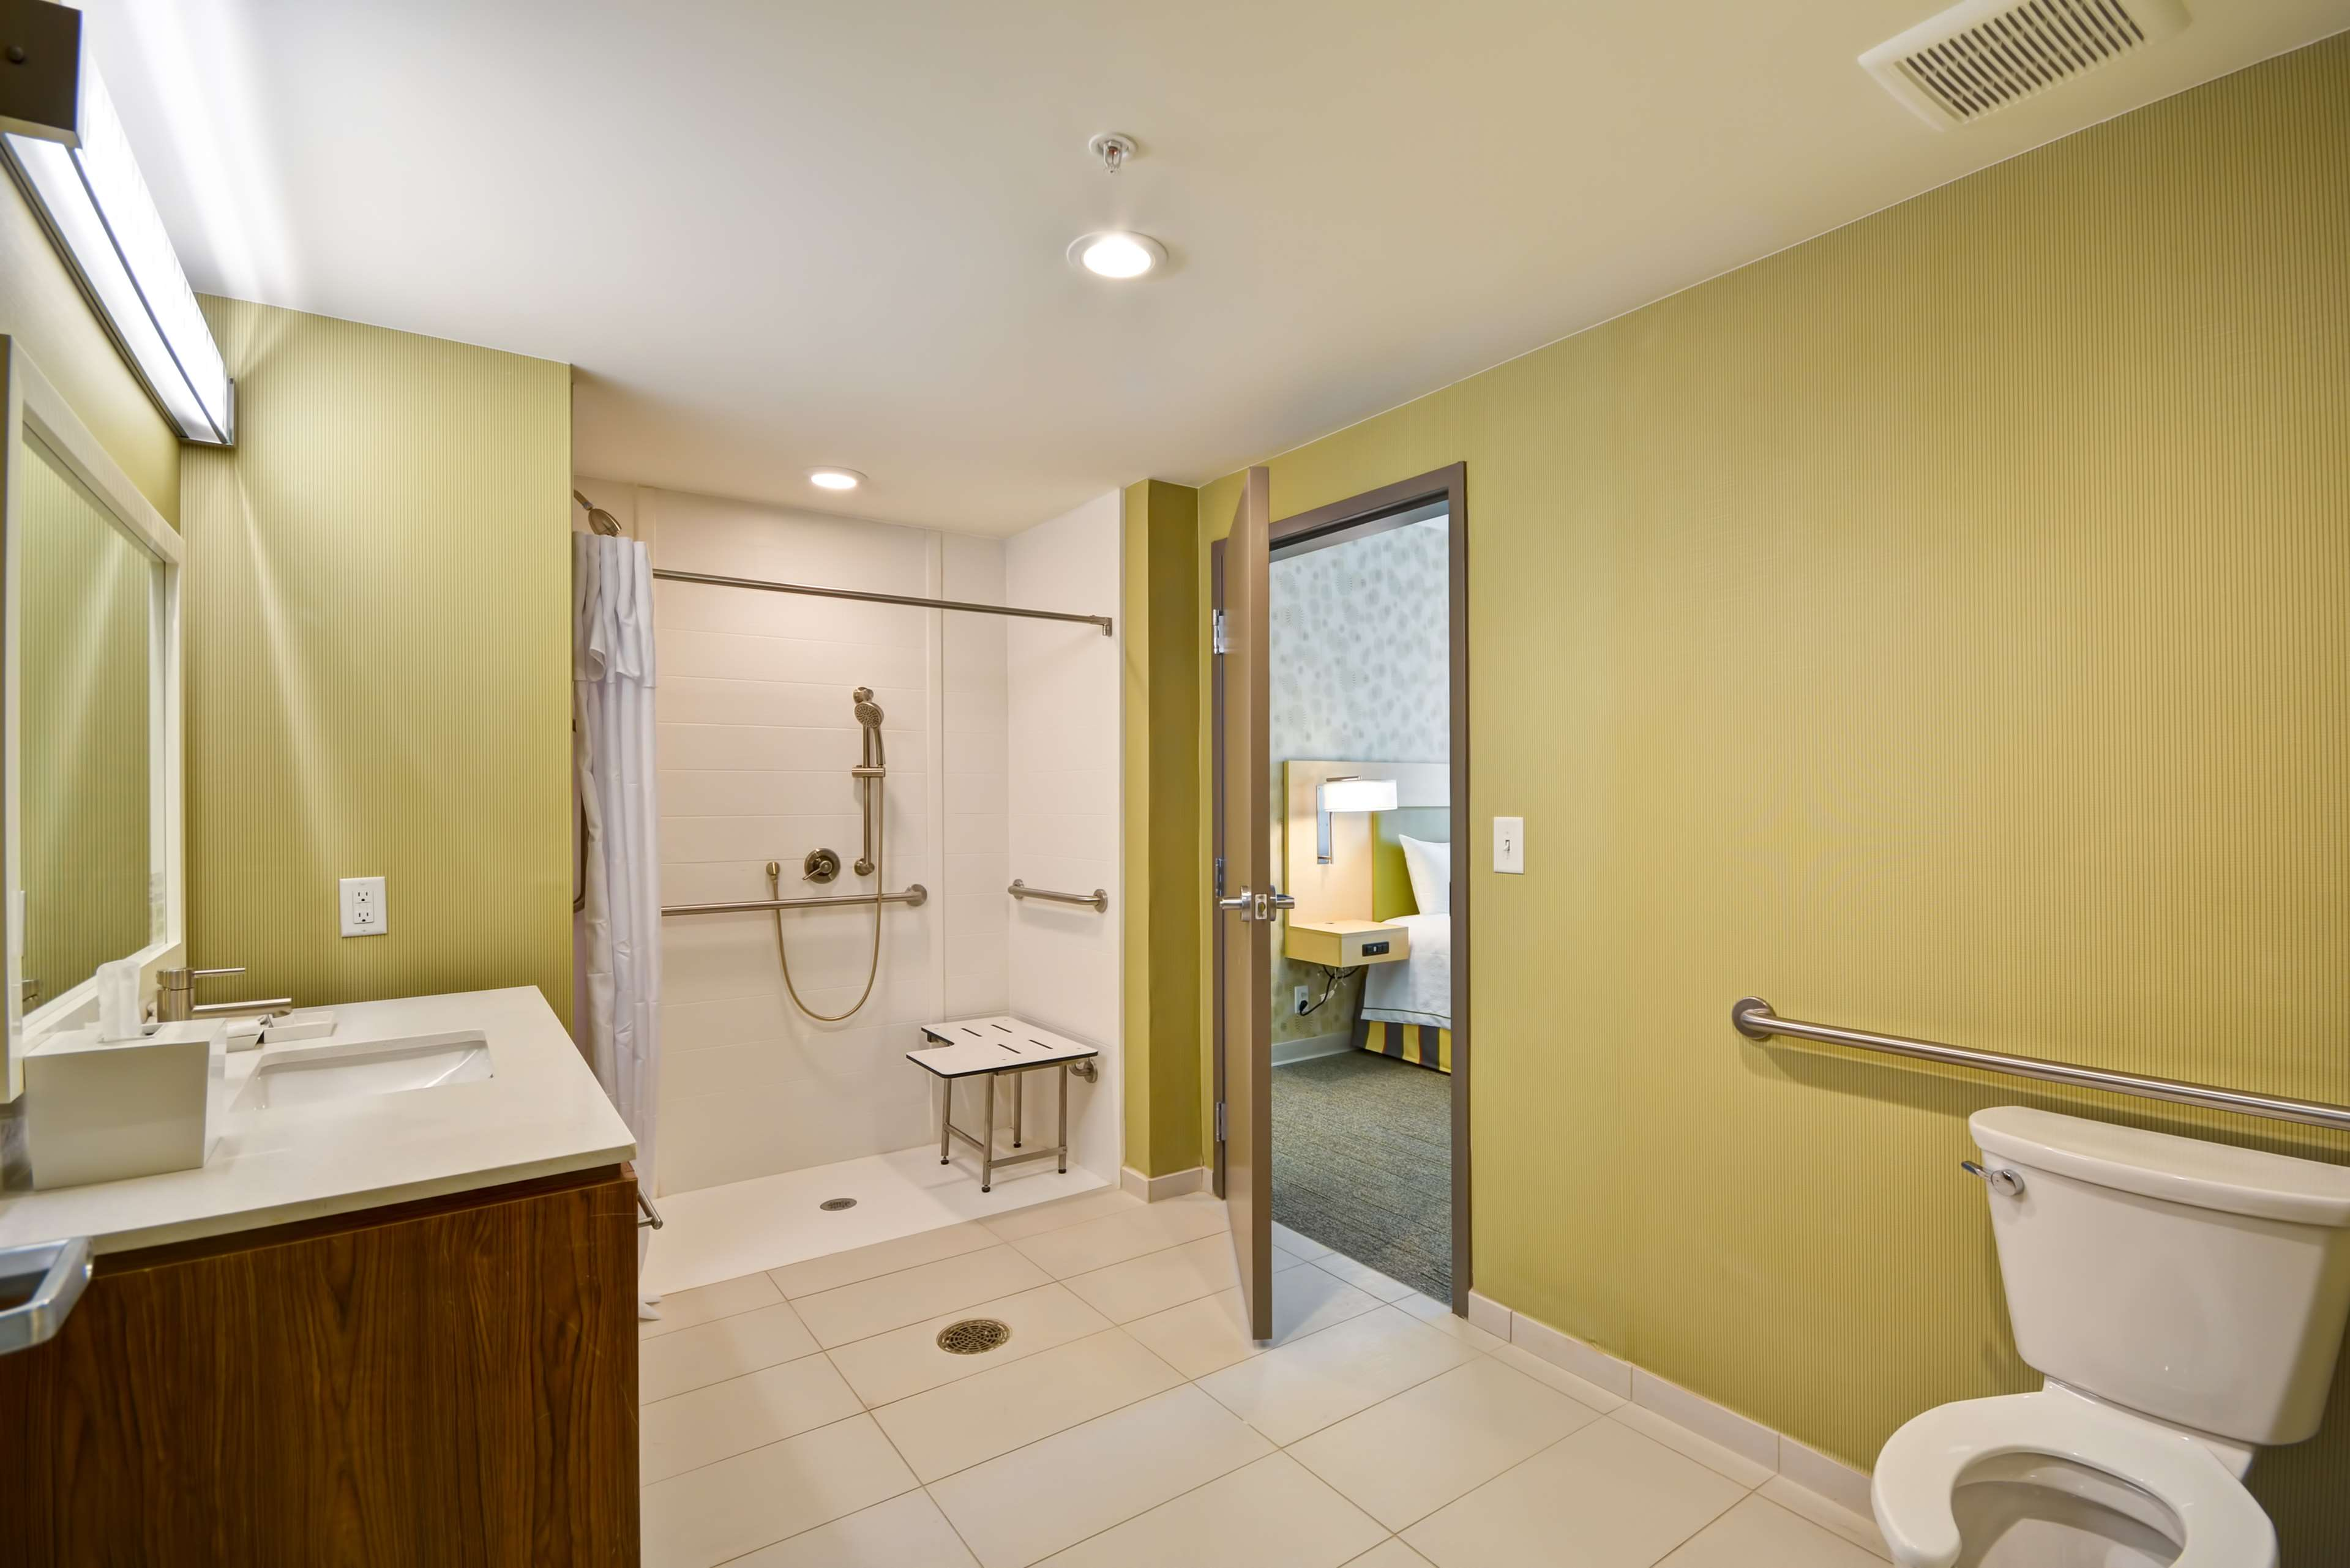 Home2 Suites by Hilton Rock Hill image 23